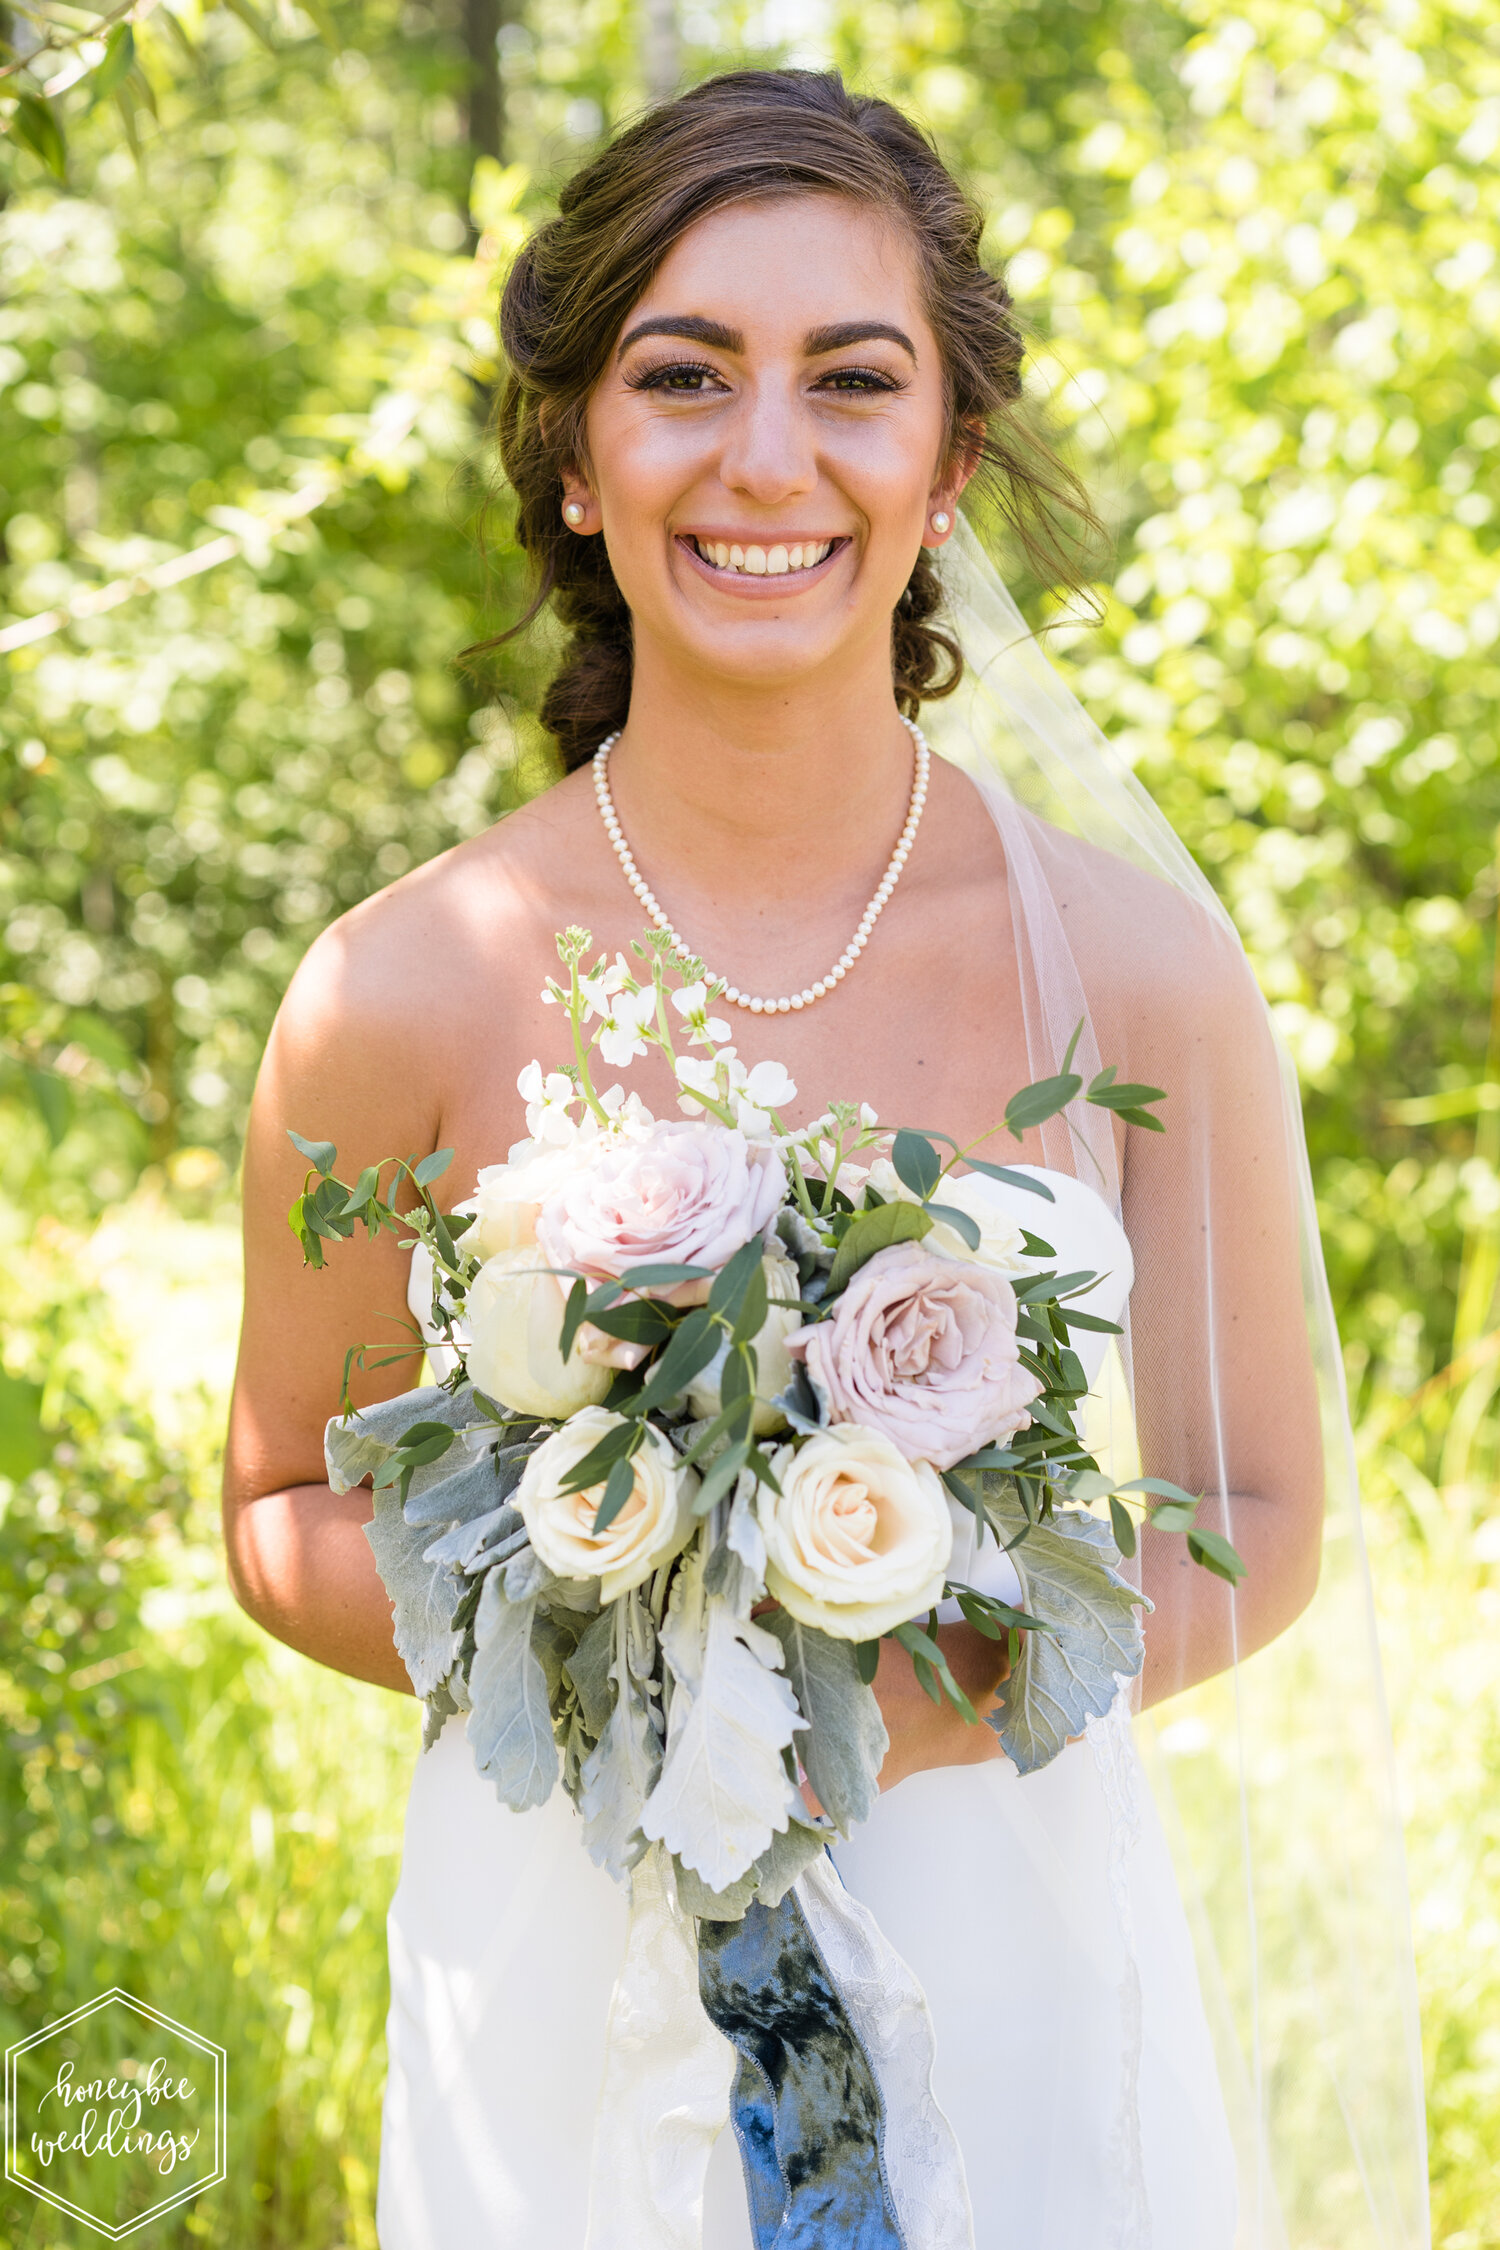 041Glacier National Park Wedding_Glacier Outdoor Center_Honeybee Weddings_Anna & Seth_July 21, 2019-73.jpg